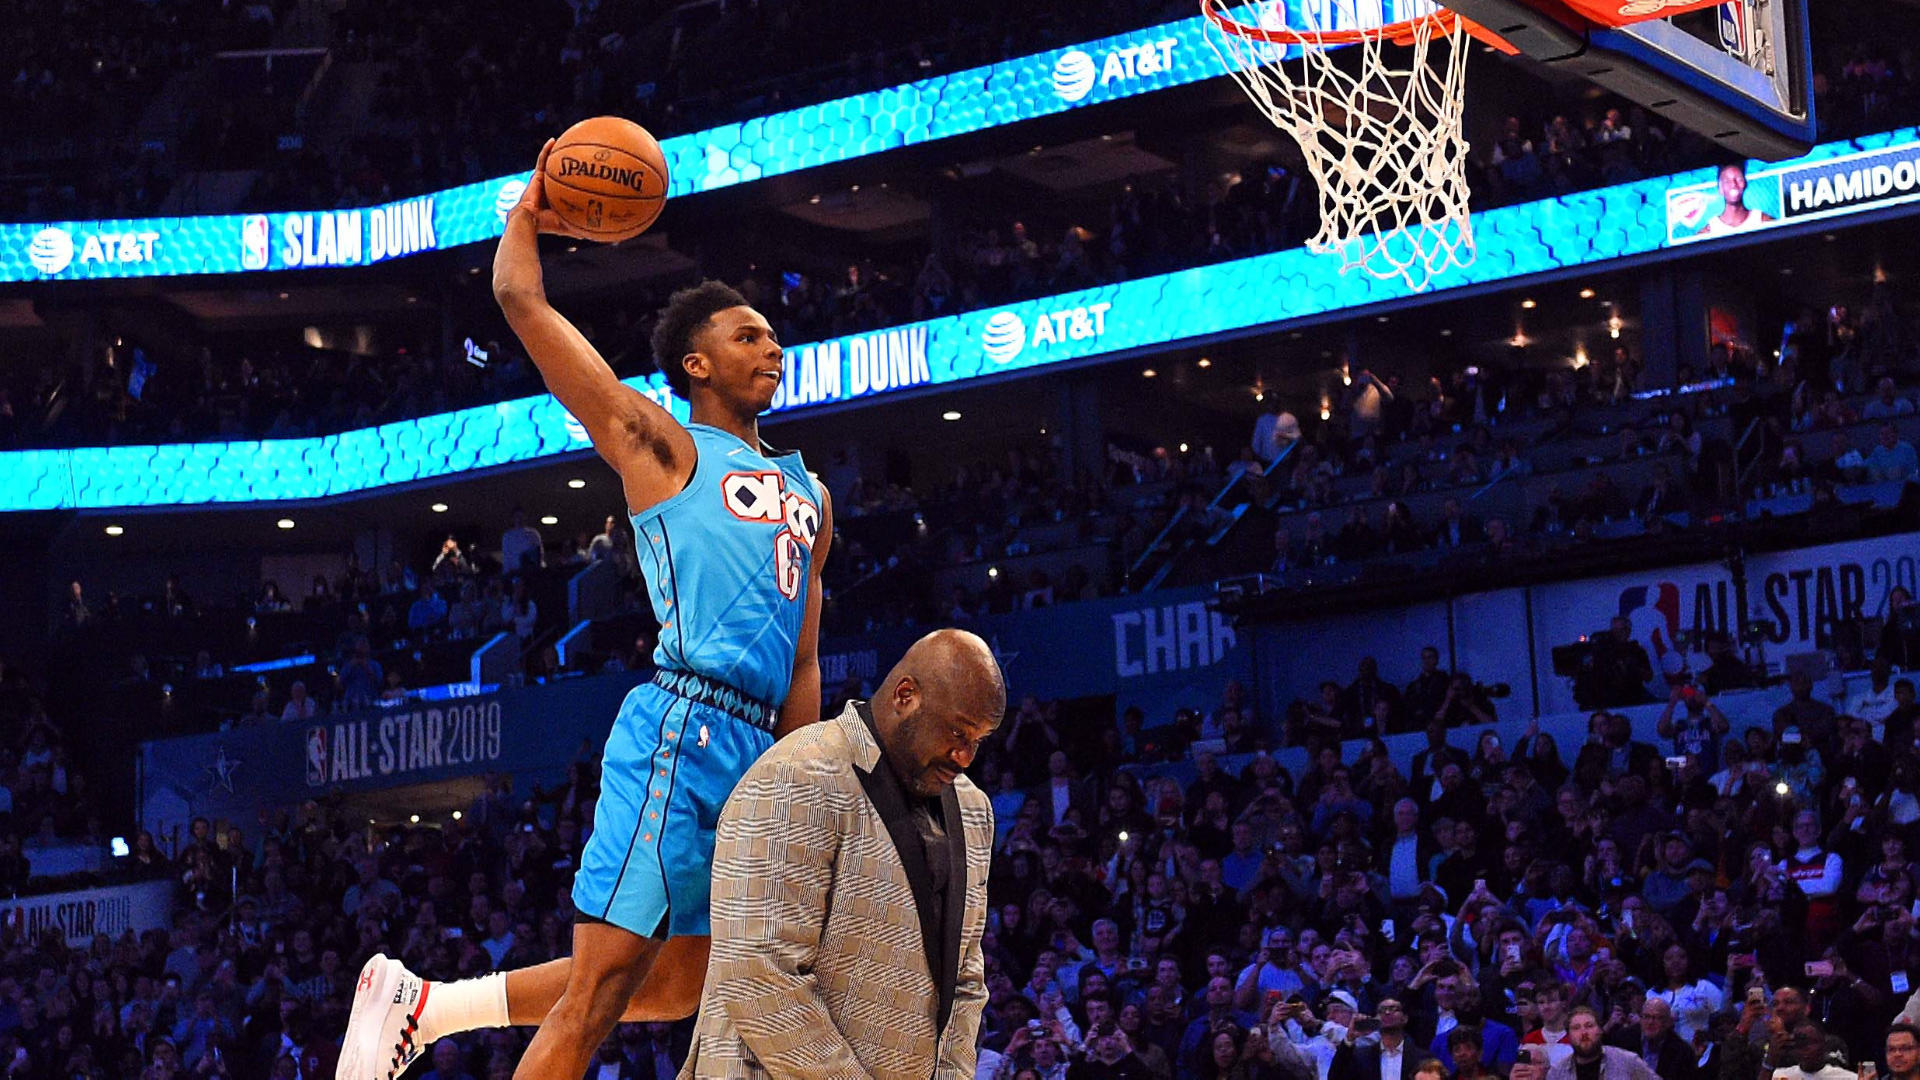 NBA Slam Dunk Contest 2019: Hamidou Diallo's soaring dunk over Shaquille O'Neal steals the show